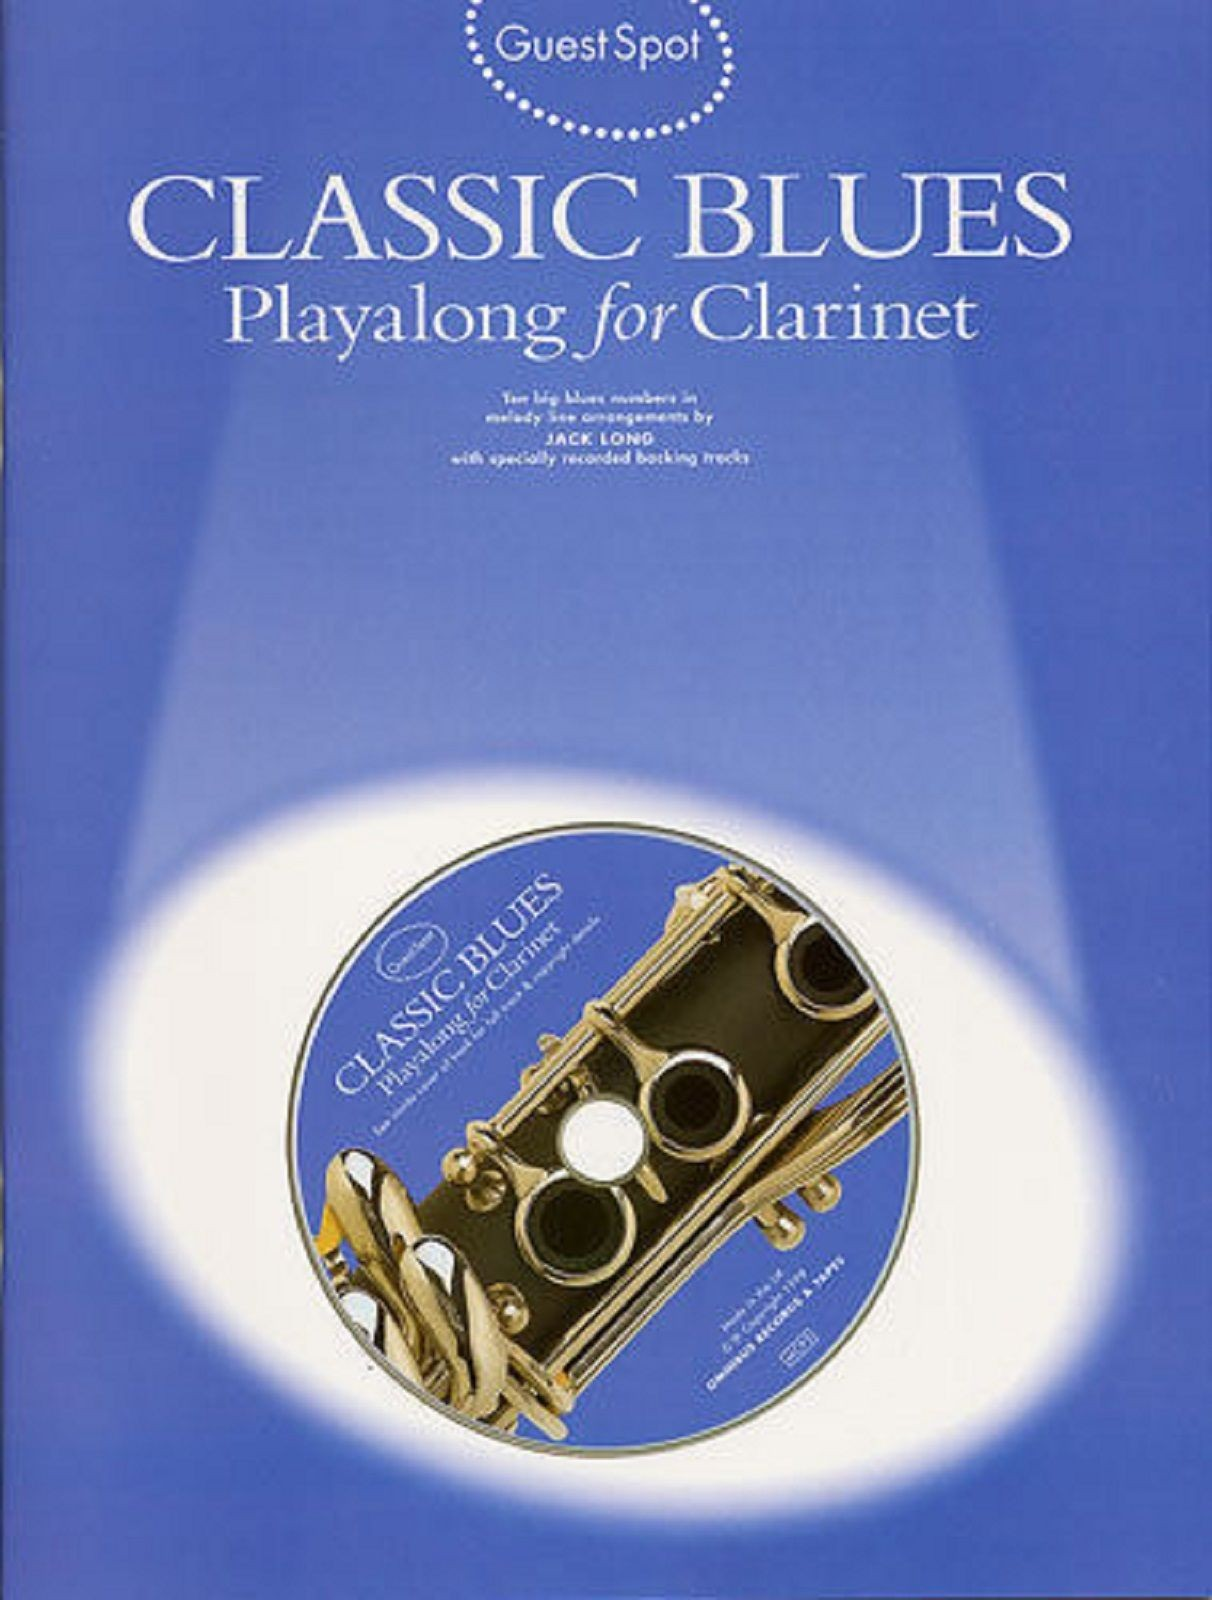 Guest Spot Classic Blues Playalong For Clarinet Music Book & CD S70